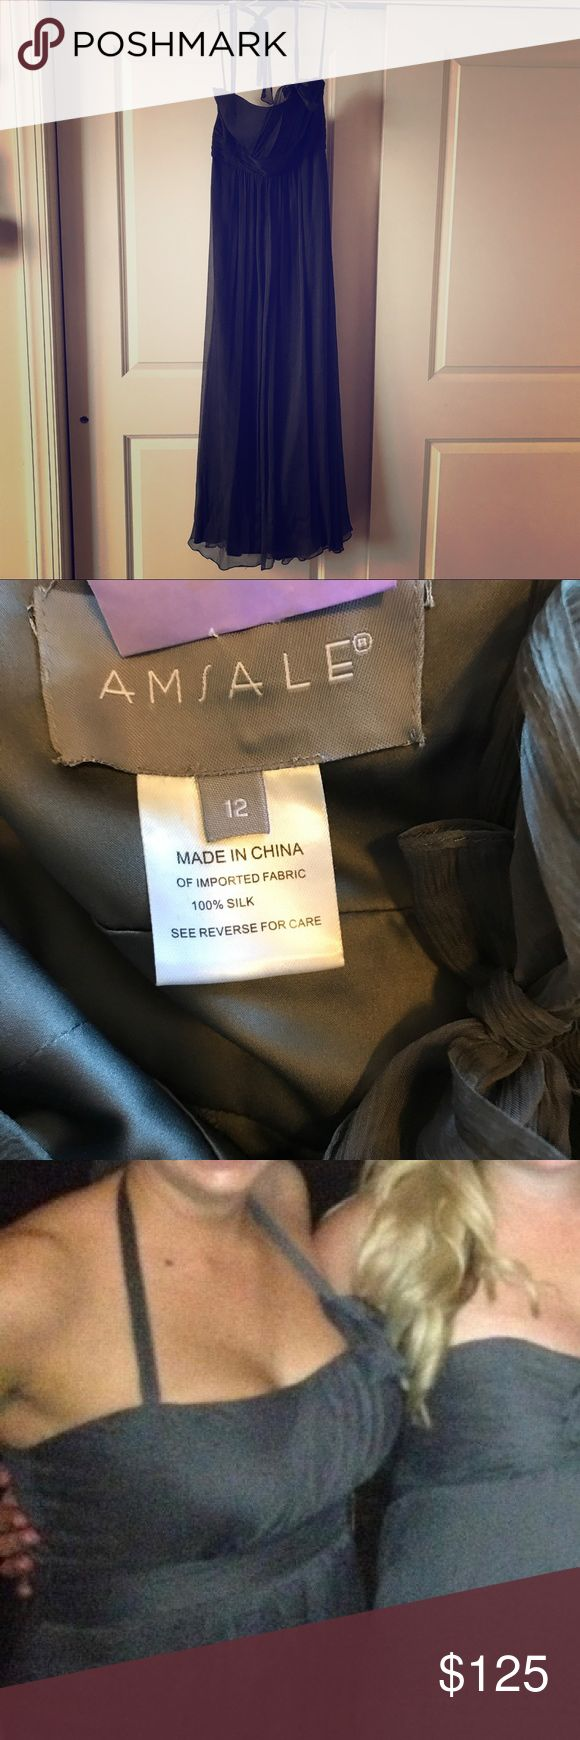 Amsale Bridesmaid Dress Charcoal Amsale silk chiffon halter dress. Worn once as a bridesmaid. Dry cleaned. Close up photo shows what the neckline is like. Size 12 altered and hemmed to probably somewhere around 8-10. Amsale Dresses